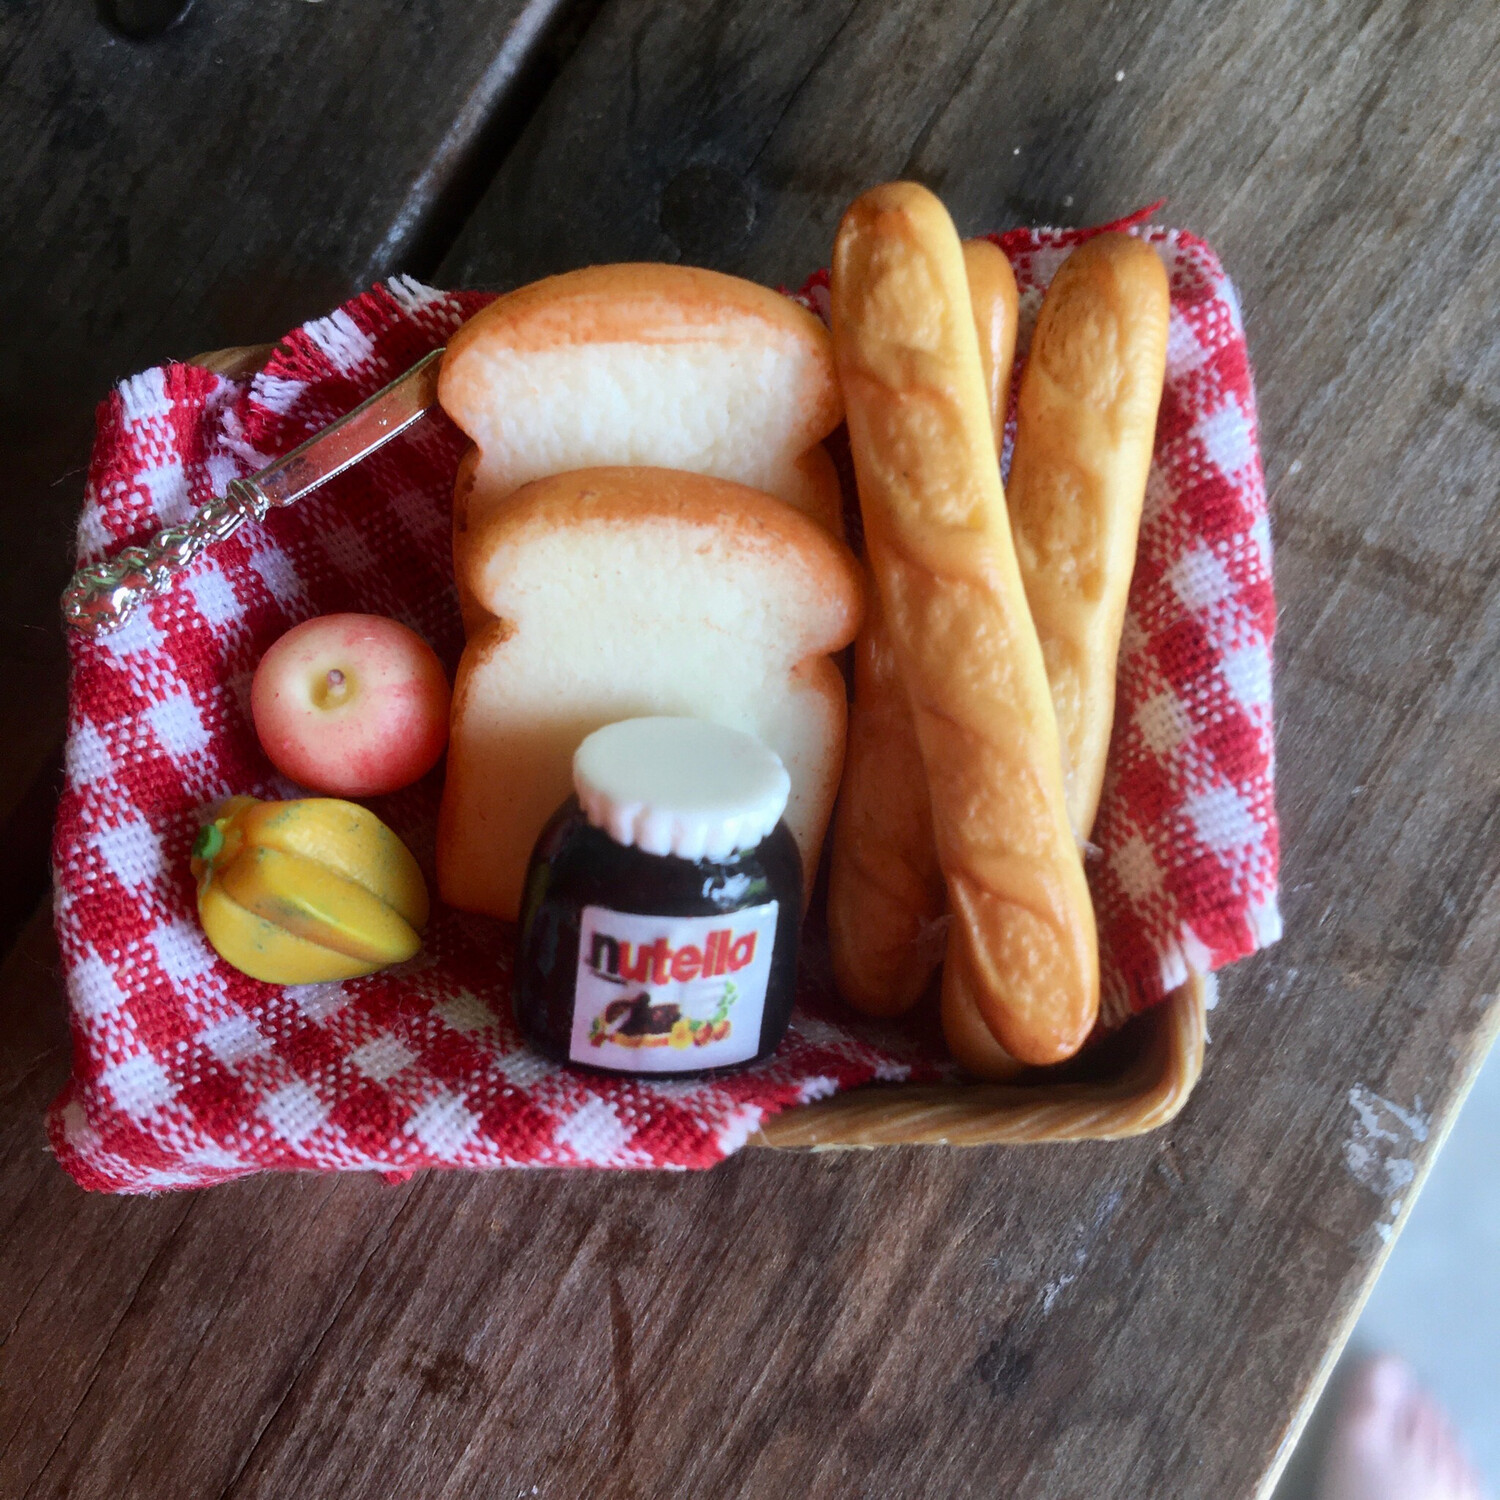 1/12 Scale Miniature Picnic Set - Nutella ( Dolls Not Included